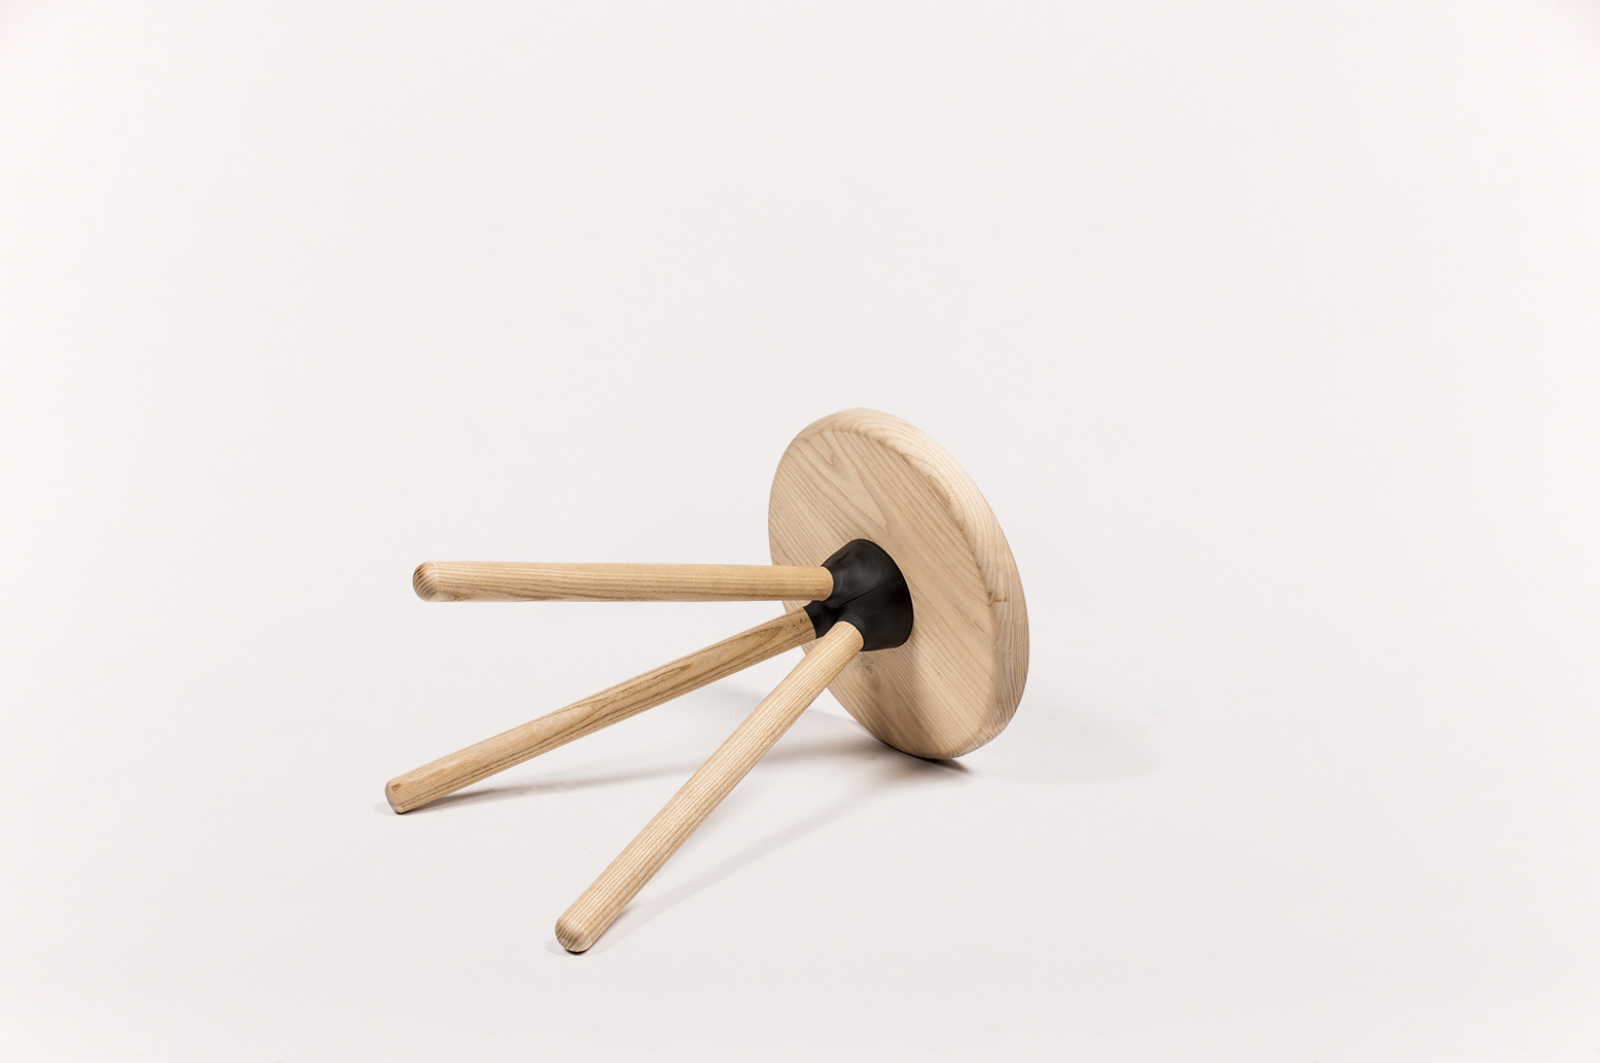 hans van sinderen Screw Stool